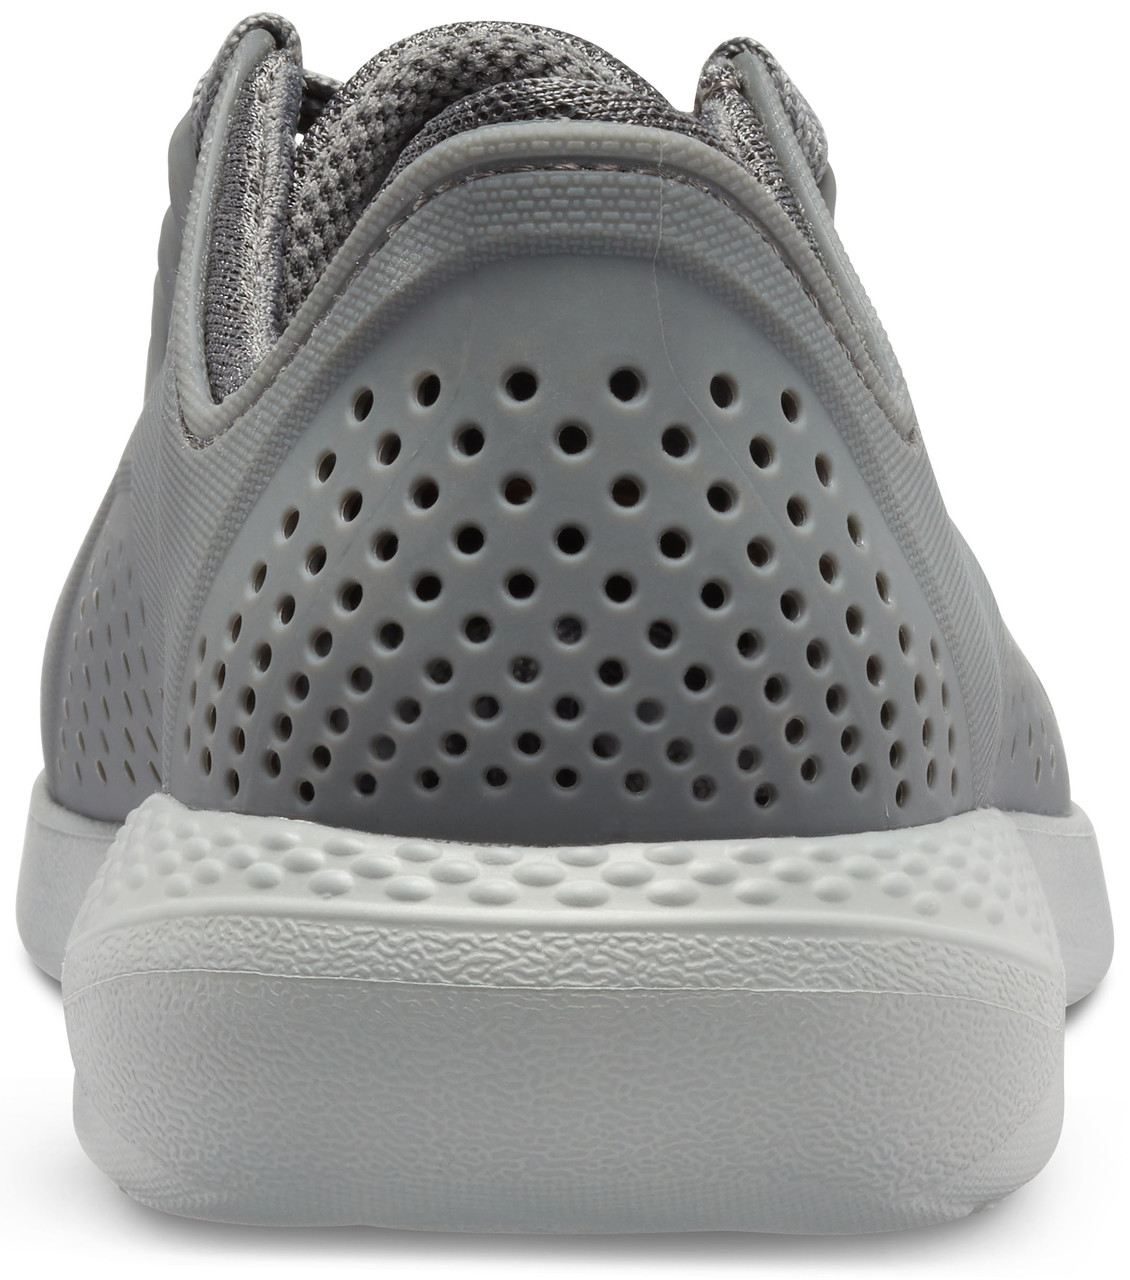 Crocs sive superge LiteRide Pacer Charcoal/Light Grey